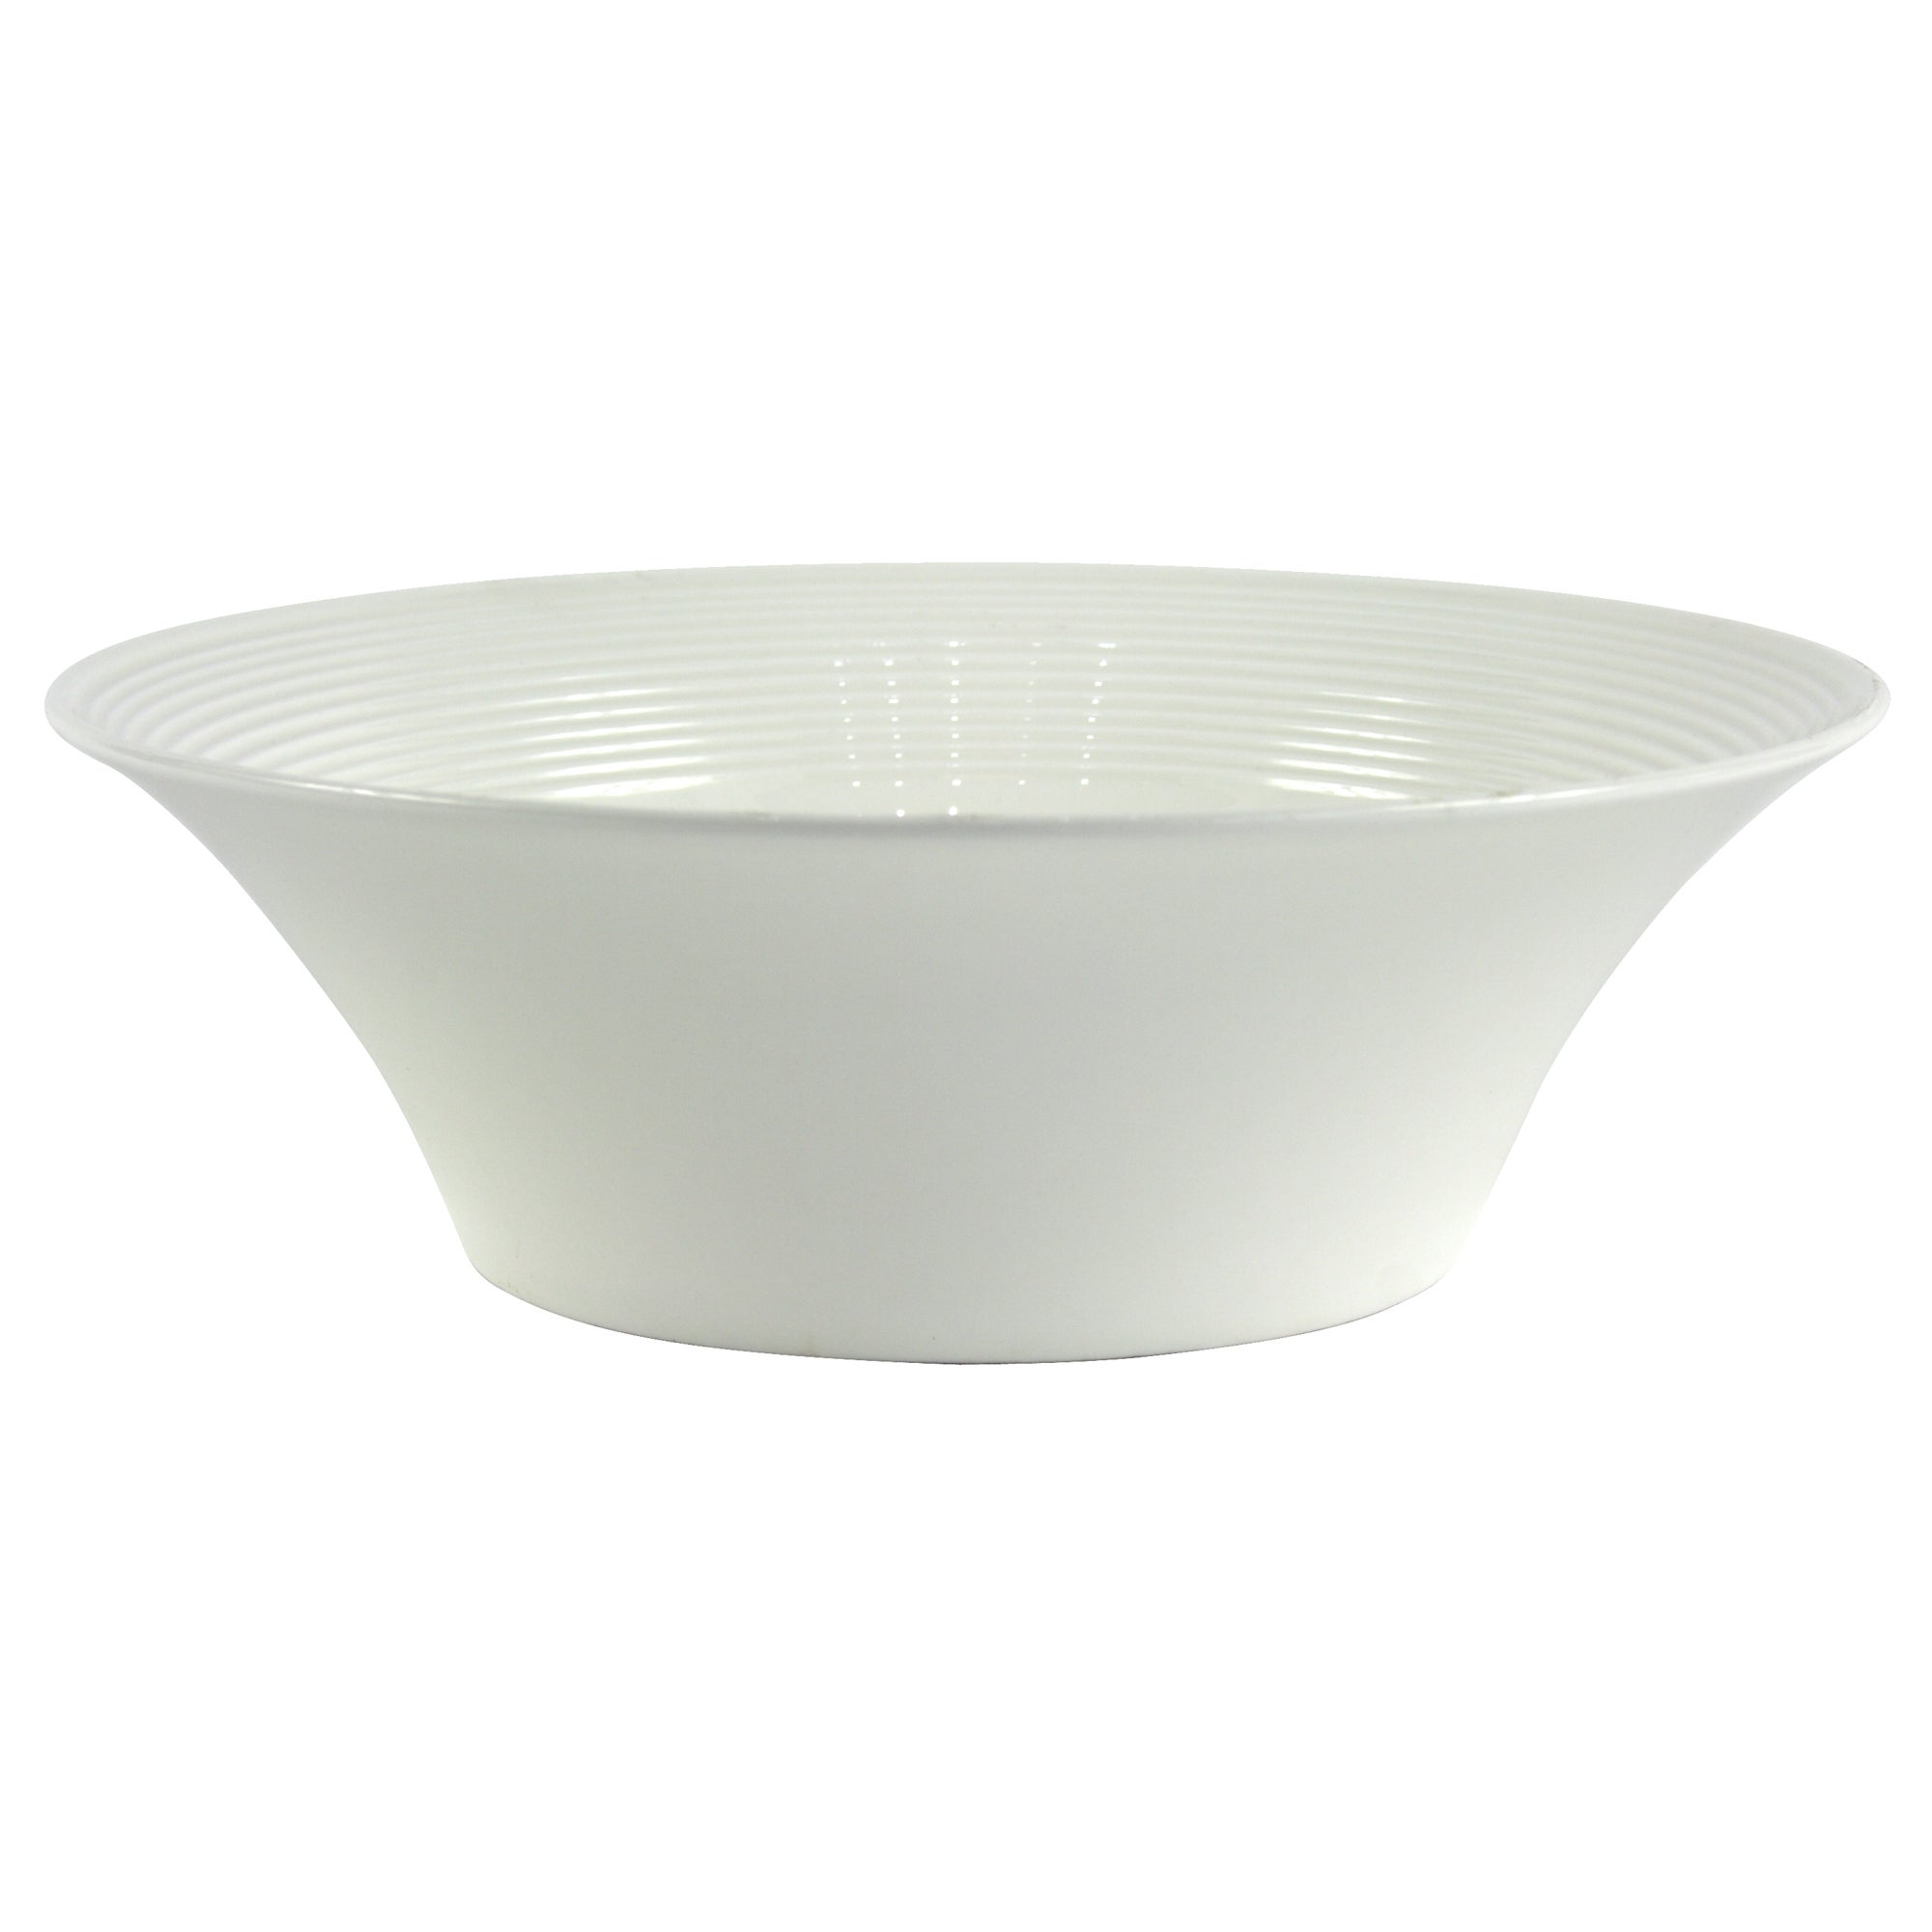 Dorma Windsor Salad Bowl